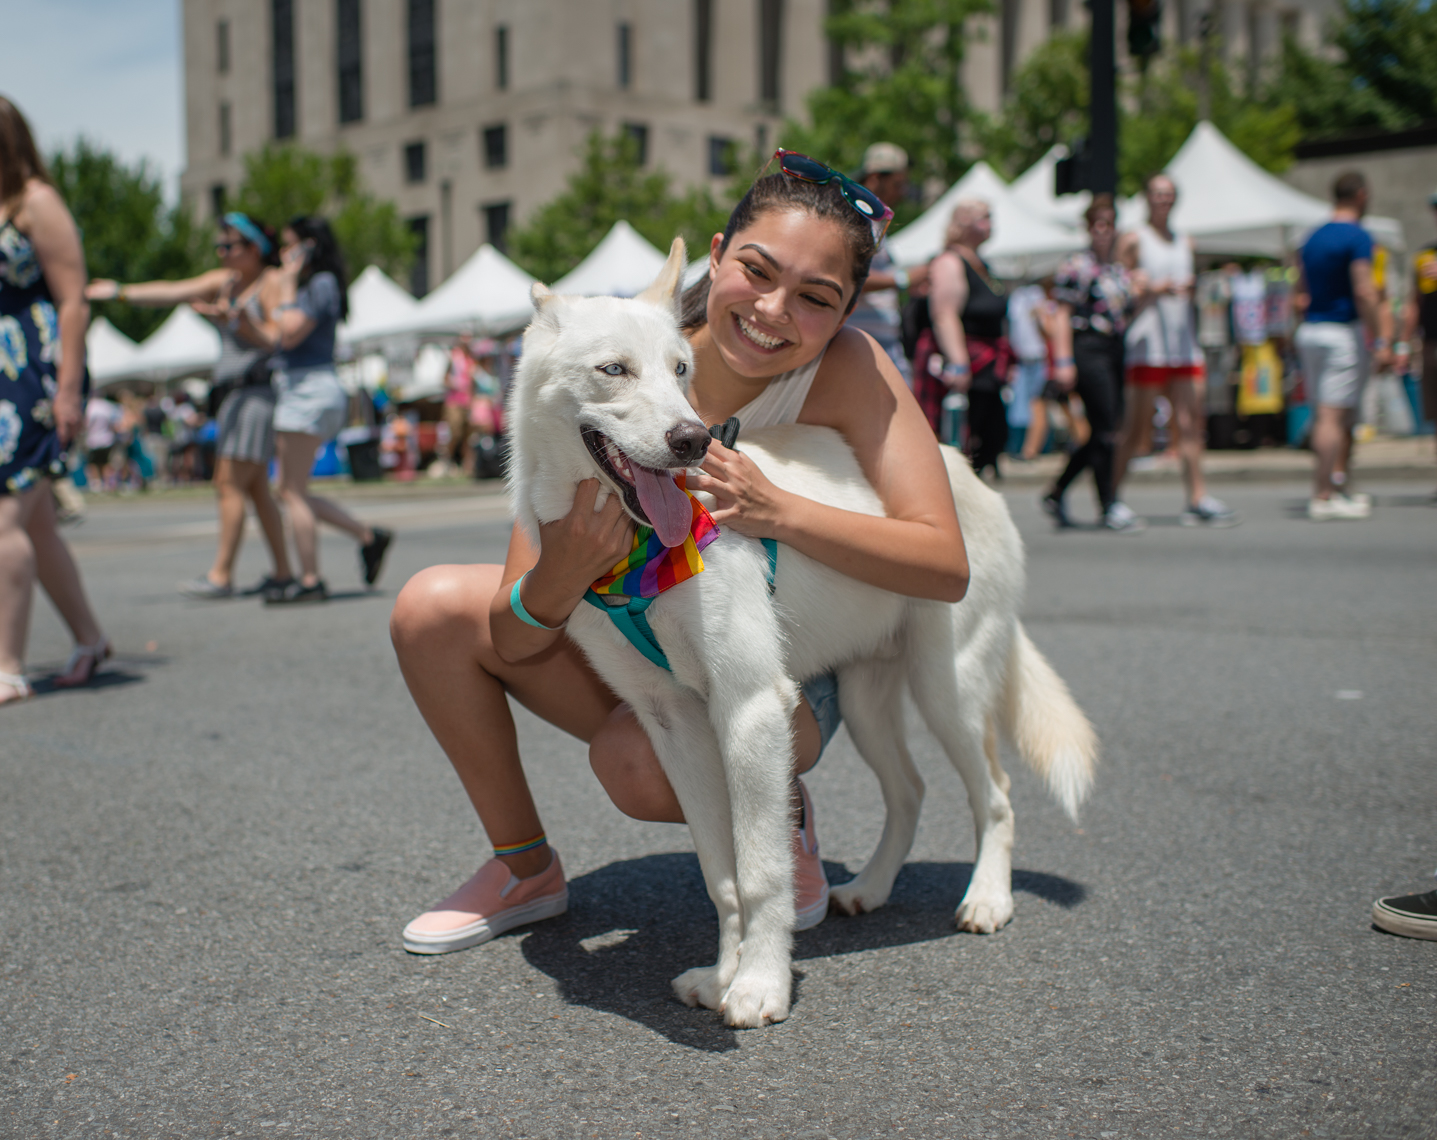 Nashville Pride Festival 2017 | Photographer + Director, Kristina Krug | authentic, authenticity, bisexual, celebrate, celebration, civil, civil liberties, courage, dancing, documentary, drag, emotions, equality, esteem, fearless, festival, festive, free, freedom, friends, fun, gay, happy, journalism, joy, joyful, Kristina Krug, krug photo, lesbian, LGBT, LGBTQ, liberty, love, love wins, loved, love is love, loveliness, lovers, love wins, men, National Pride Day, parade, people, photographer, photojournalism, photojournalist, Portrait, Predators, pride, Pride Parade, proud, queen, queer, relationship, reportage, respect, rights, safety, self, sexuality, summer, sun, sunny, Transgender, lesbian woman with her blue eyed white husky dog with pride rainbow bandana at Public Square Park in downtown Nashville Pride Fest and Equality Walk